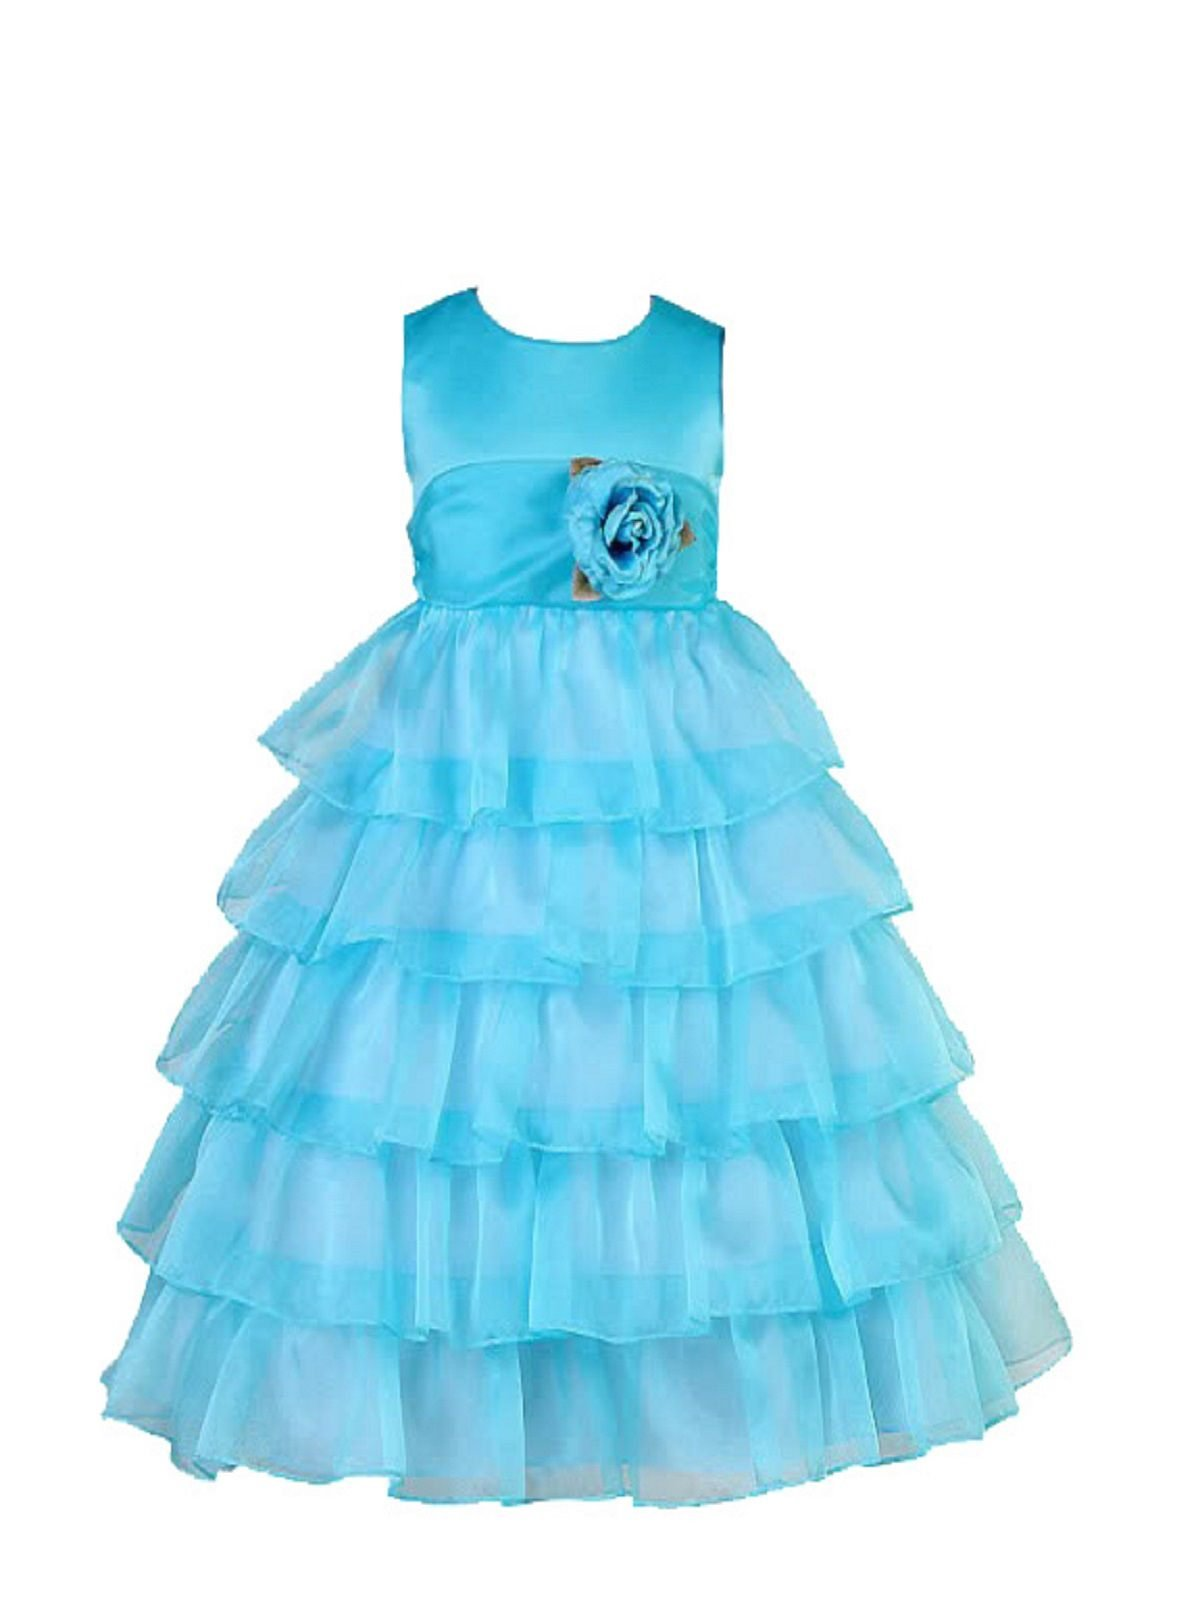 Sofyana Baby Girls Netted Princess Gown Birthday Party Wear Frock